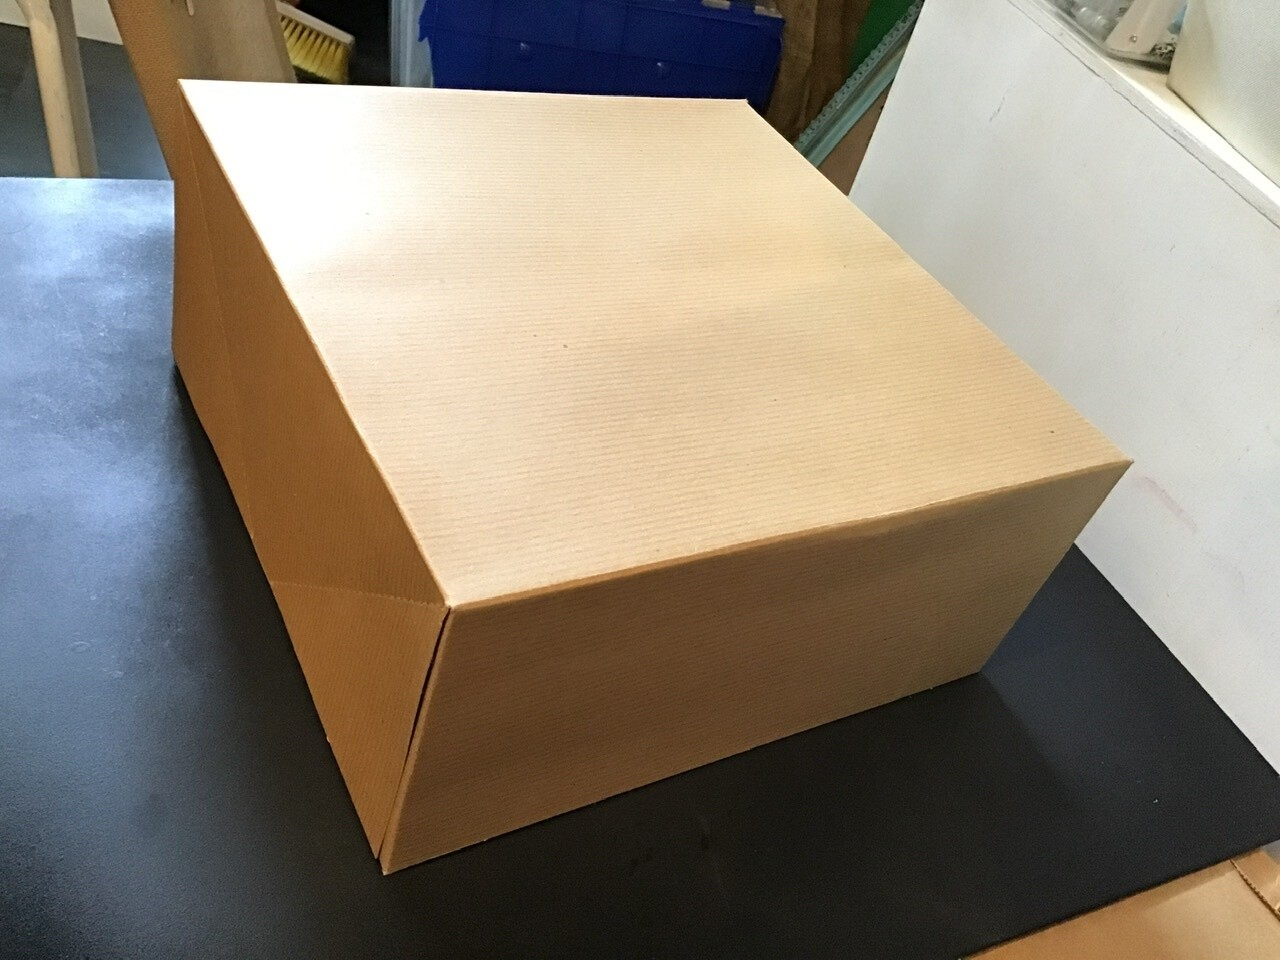 "2 Gift Boxes - 12"" x 12"" x 5 1/2 """